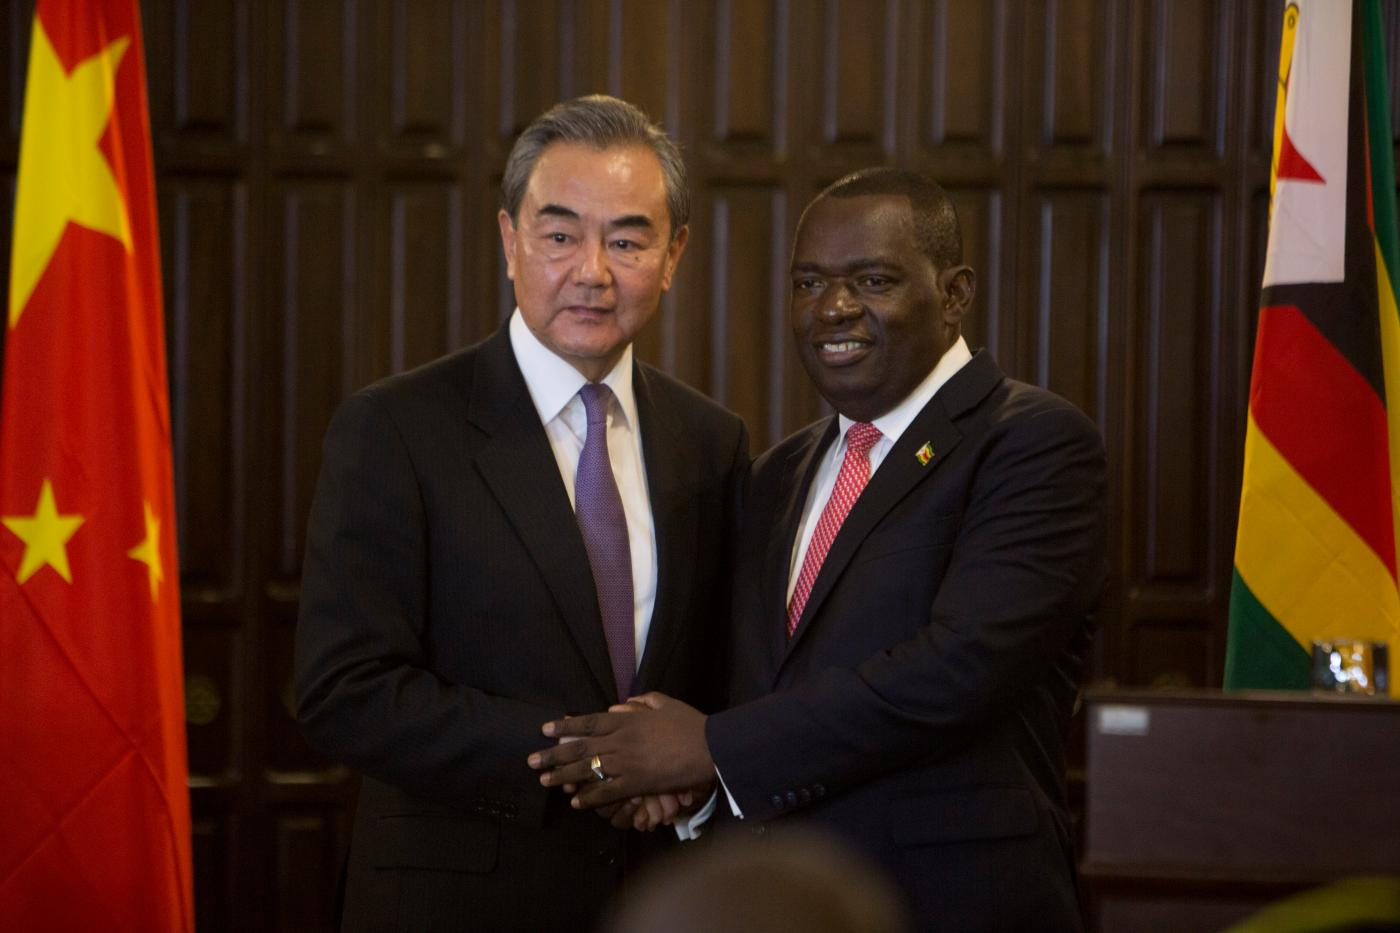 A currency swap deal with China could backfire on Zimbabwe's hope to build forex reserves